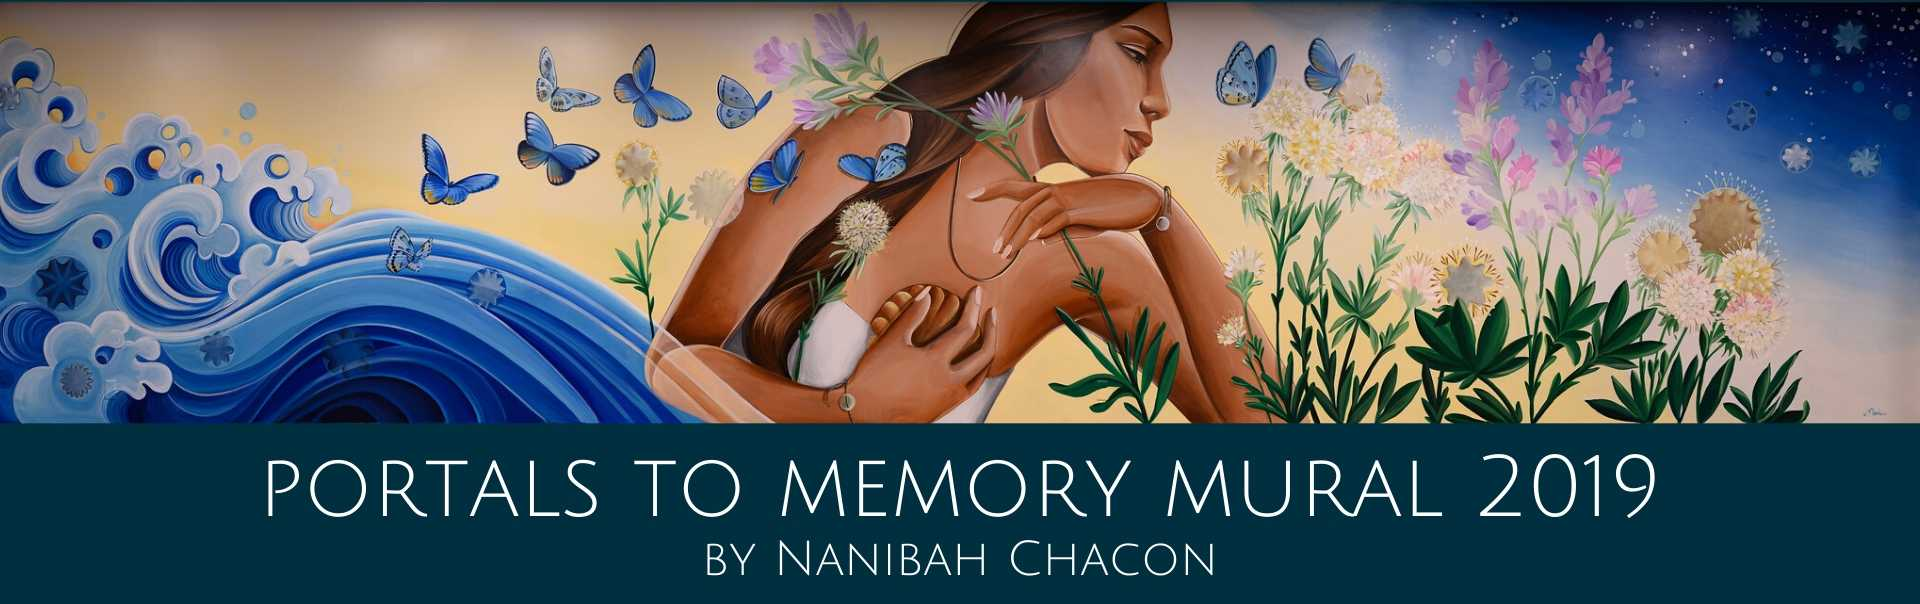 Image of portals to memory mural by nanibah chacon in community room